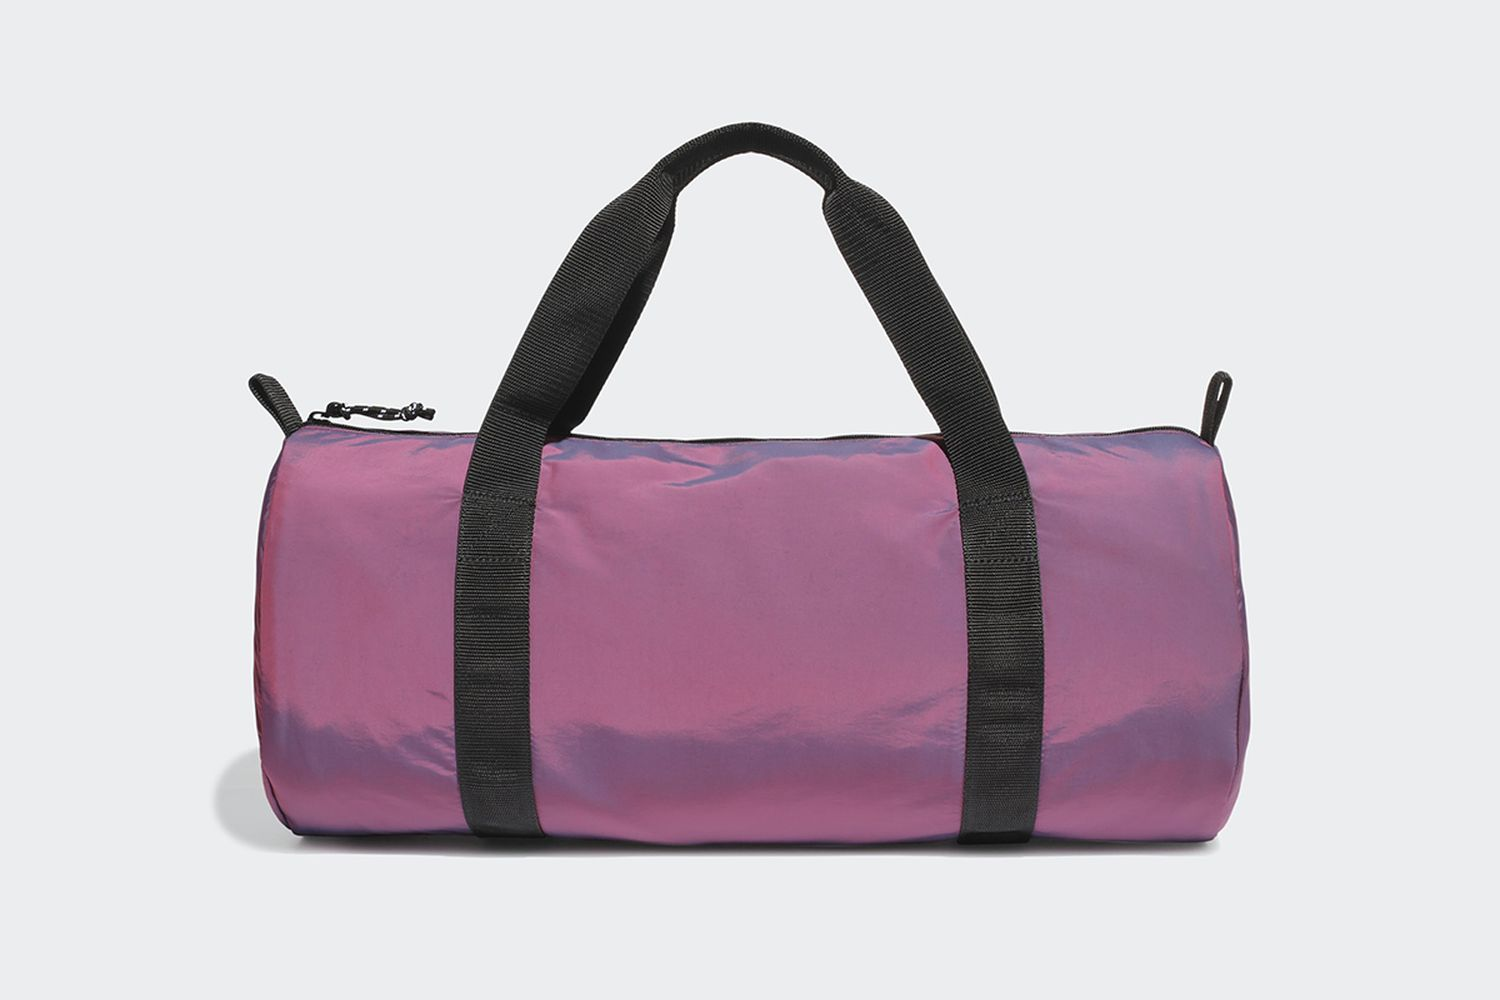 Two-Toned Bag